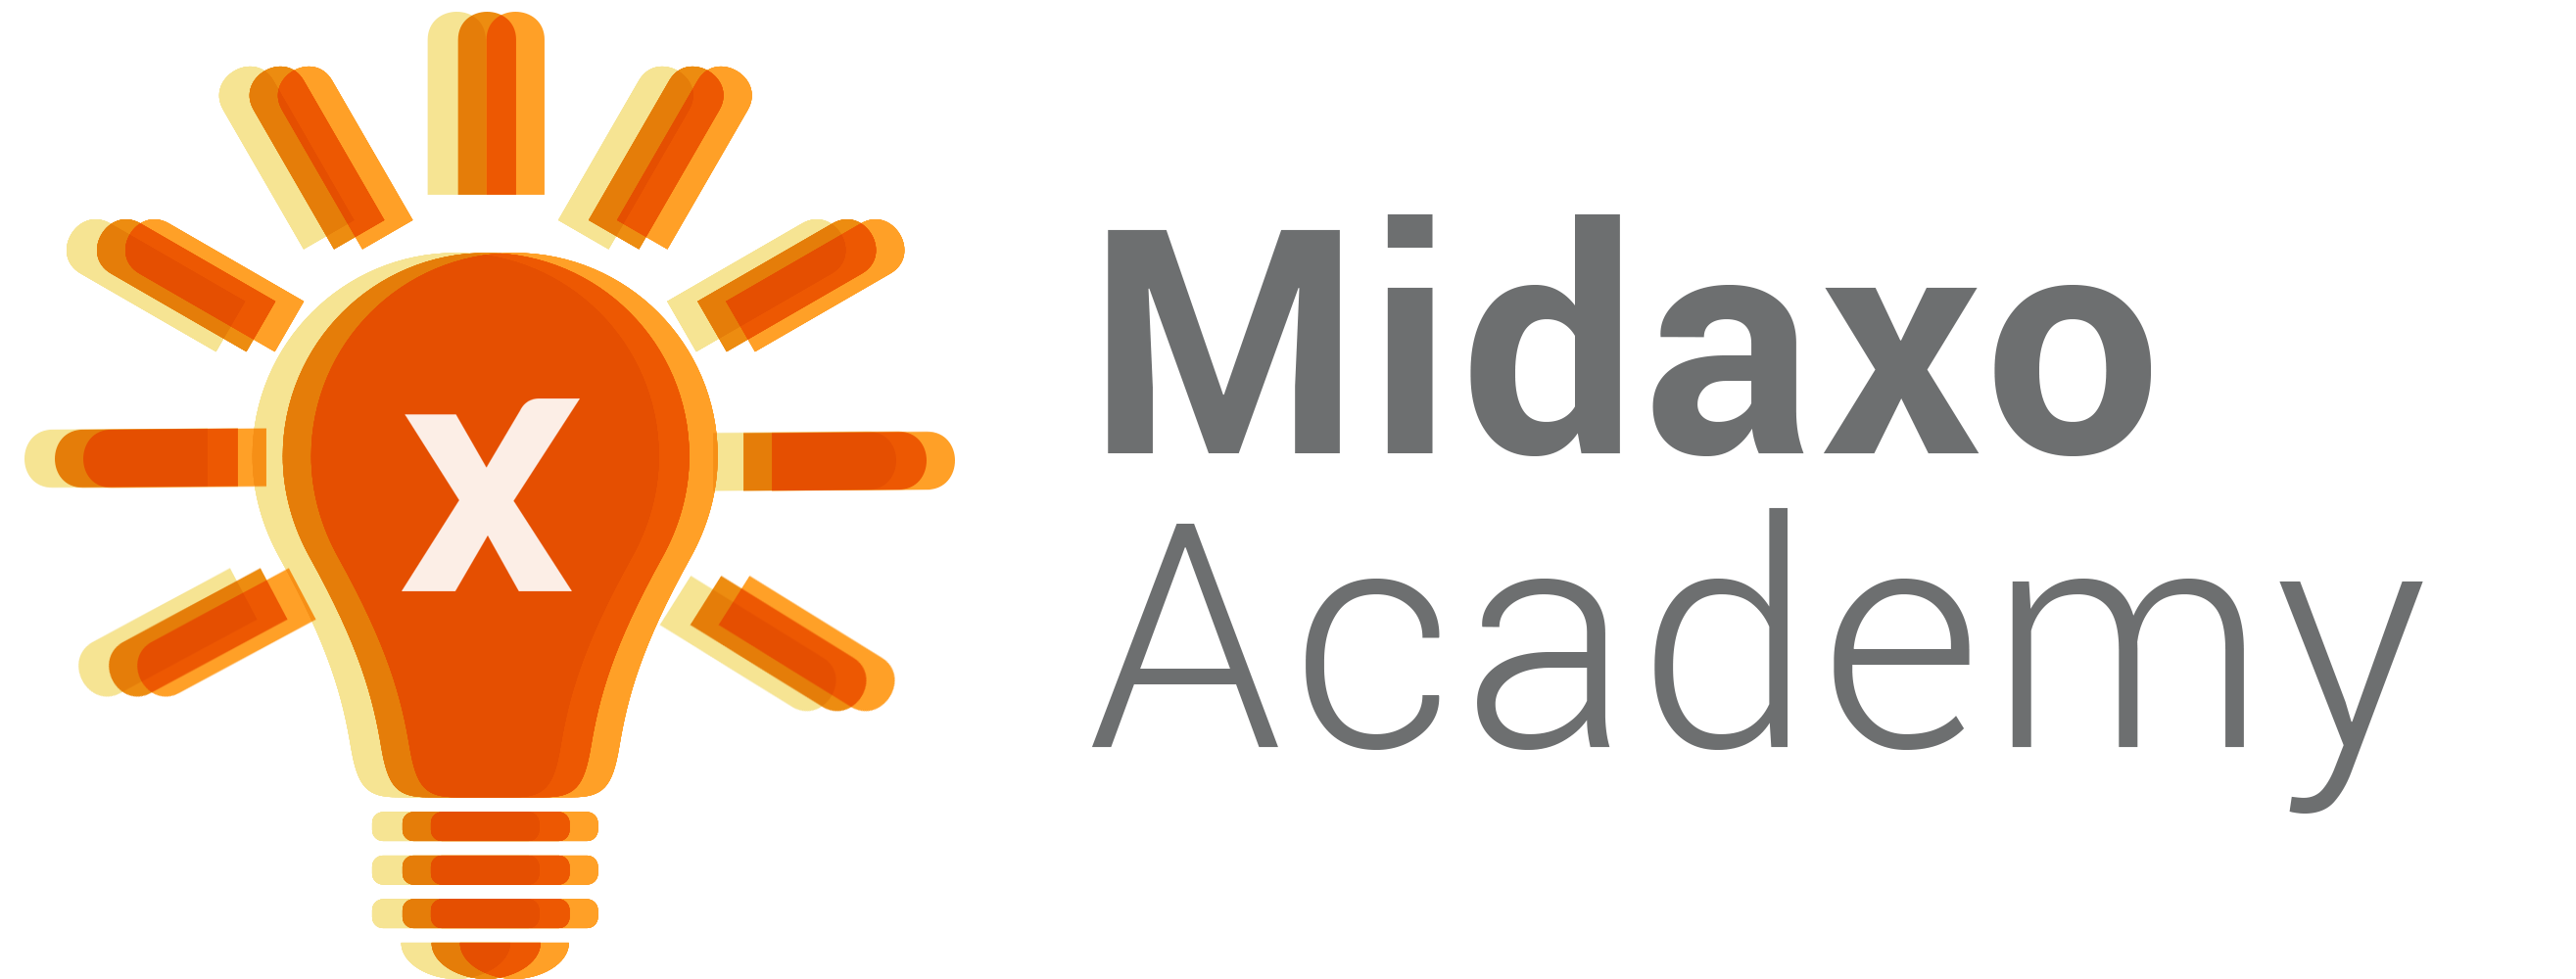 academy-logo-transparent-background.png